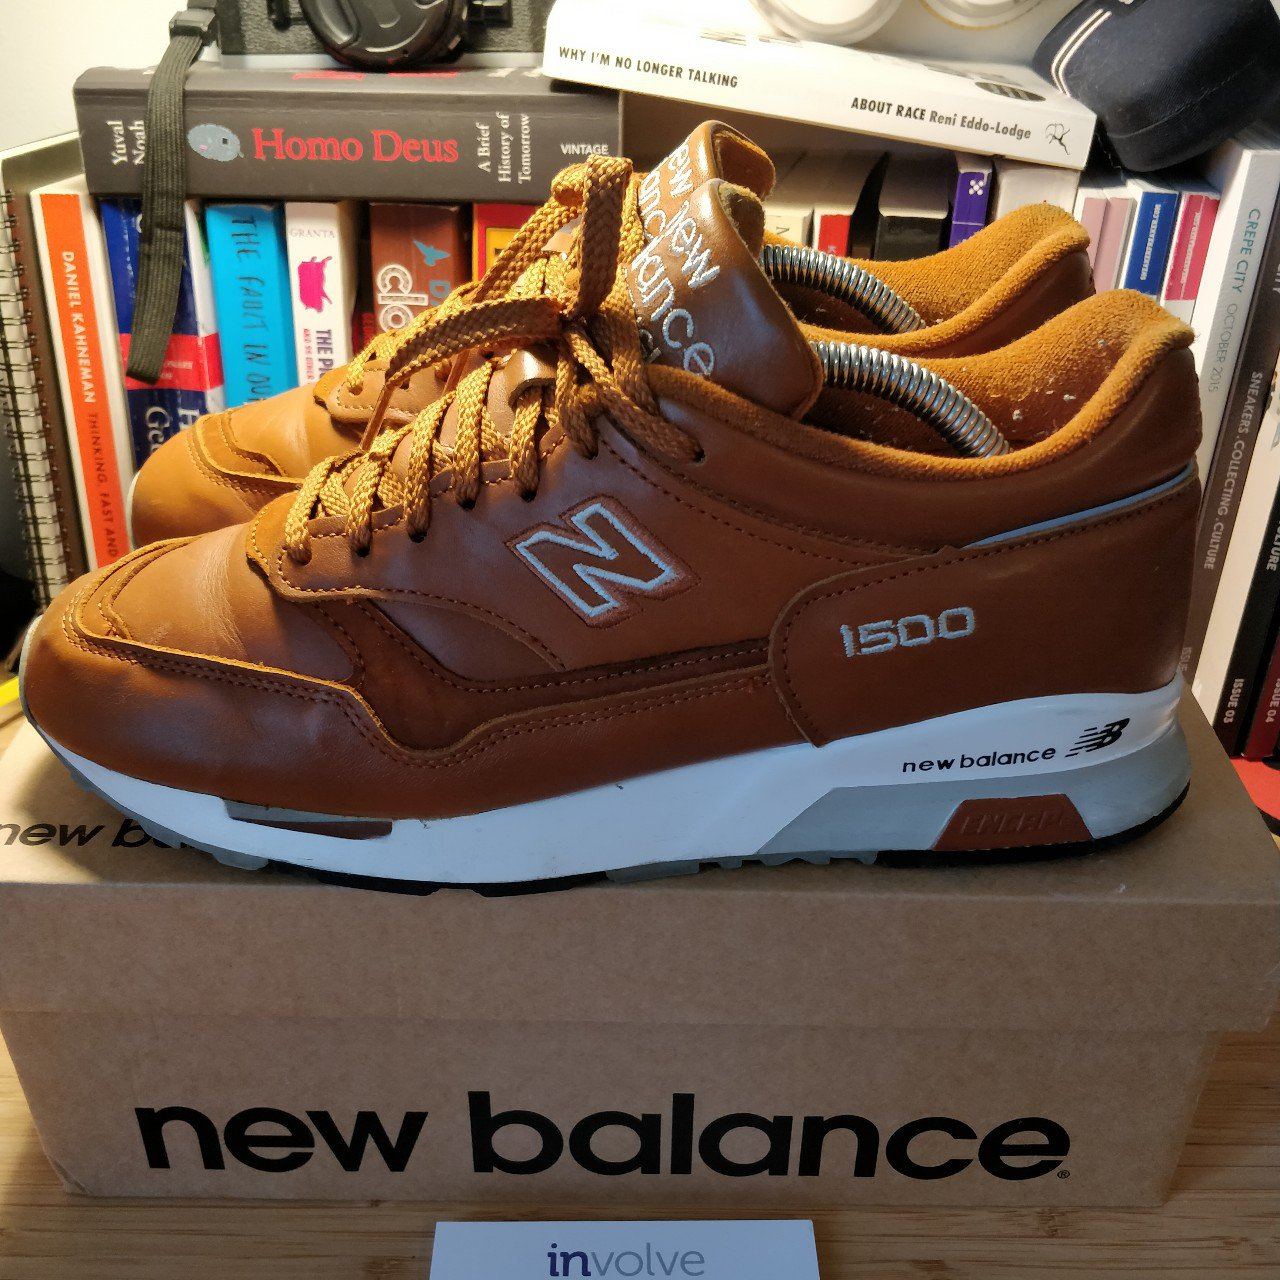 New Balance 1500 curry leather UK8 Used insoles (no on and - Depop c8cace1d4